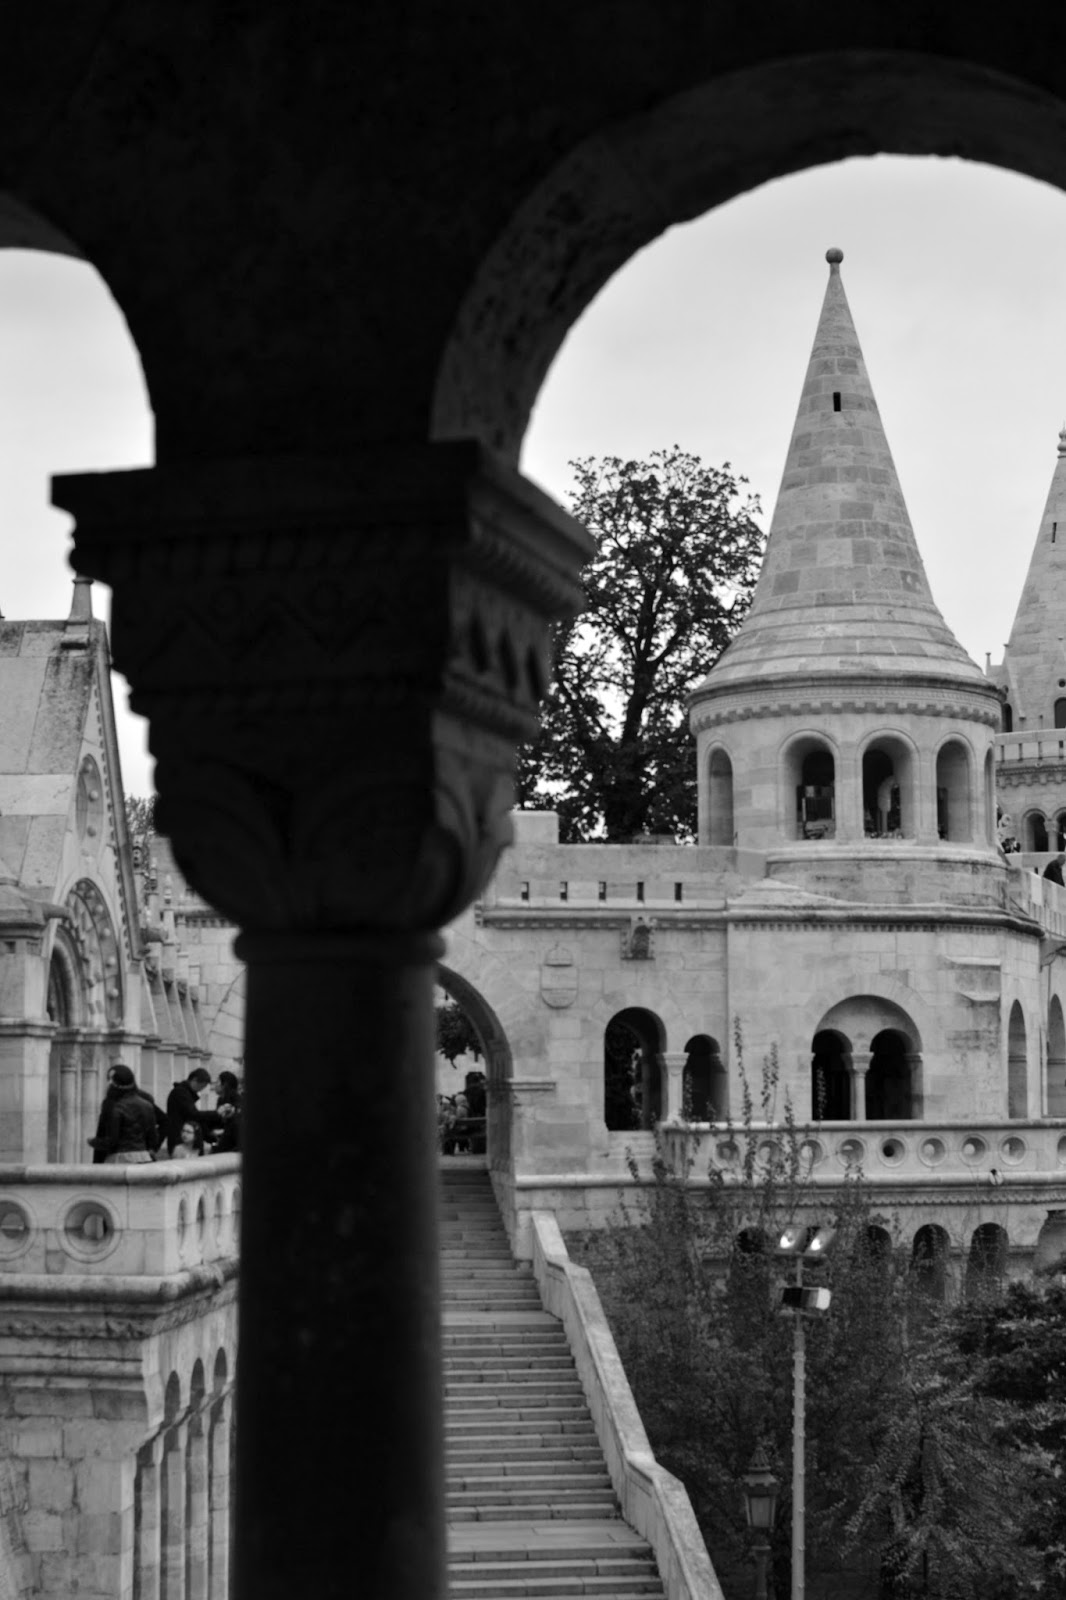 Budapest, photography, night time, architecture, travel, blog, adventure, exploration, chain bridge, Danube, funicular, buda castle, buda hill, old, traditional, Matthias church, fisherman's bastion, Hungarian parliament